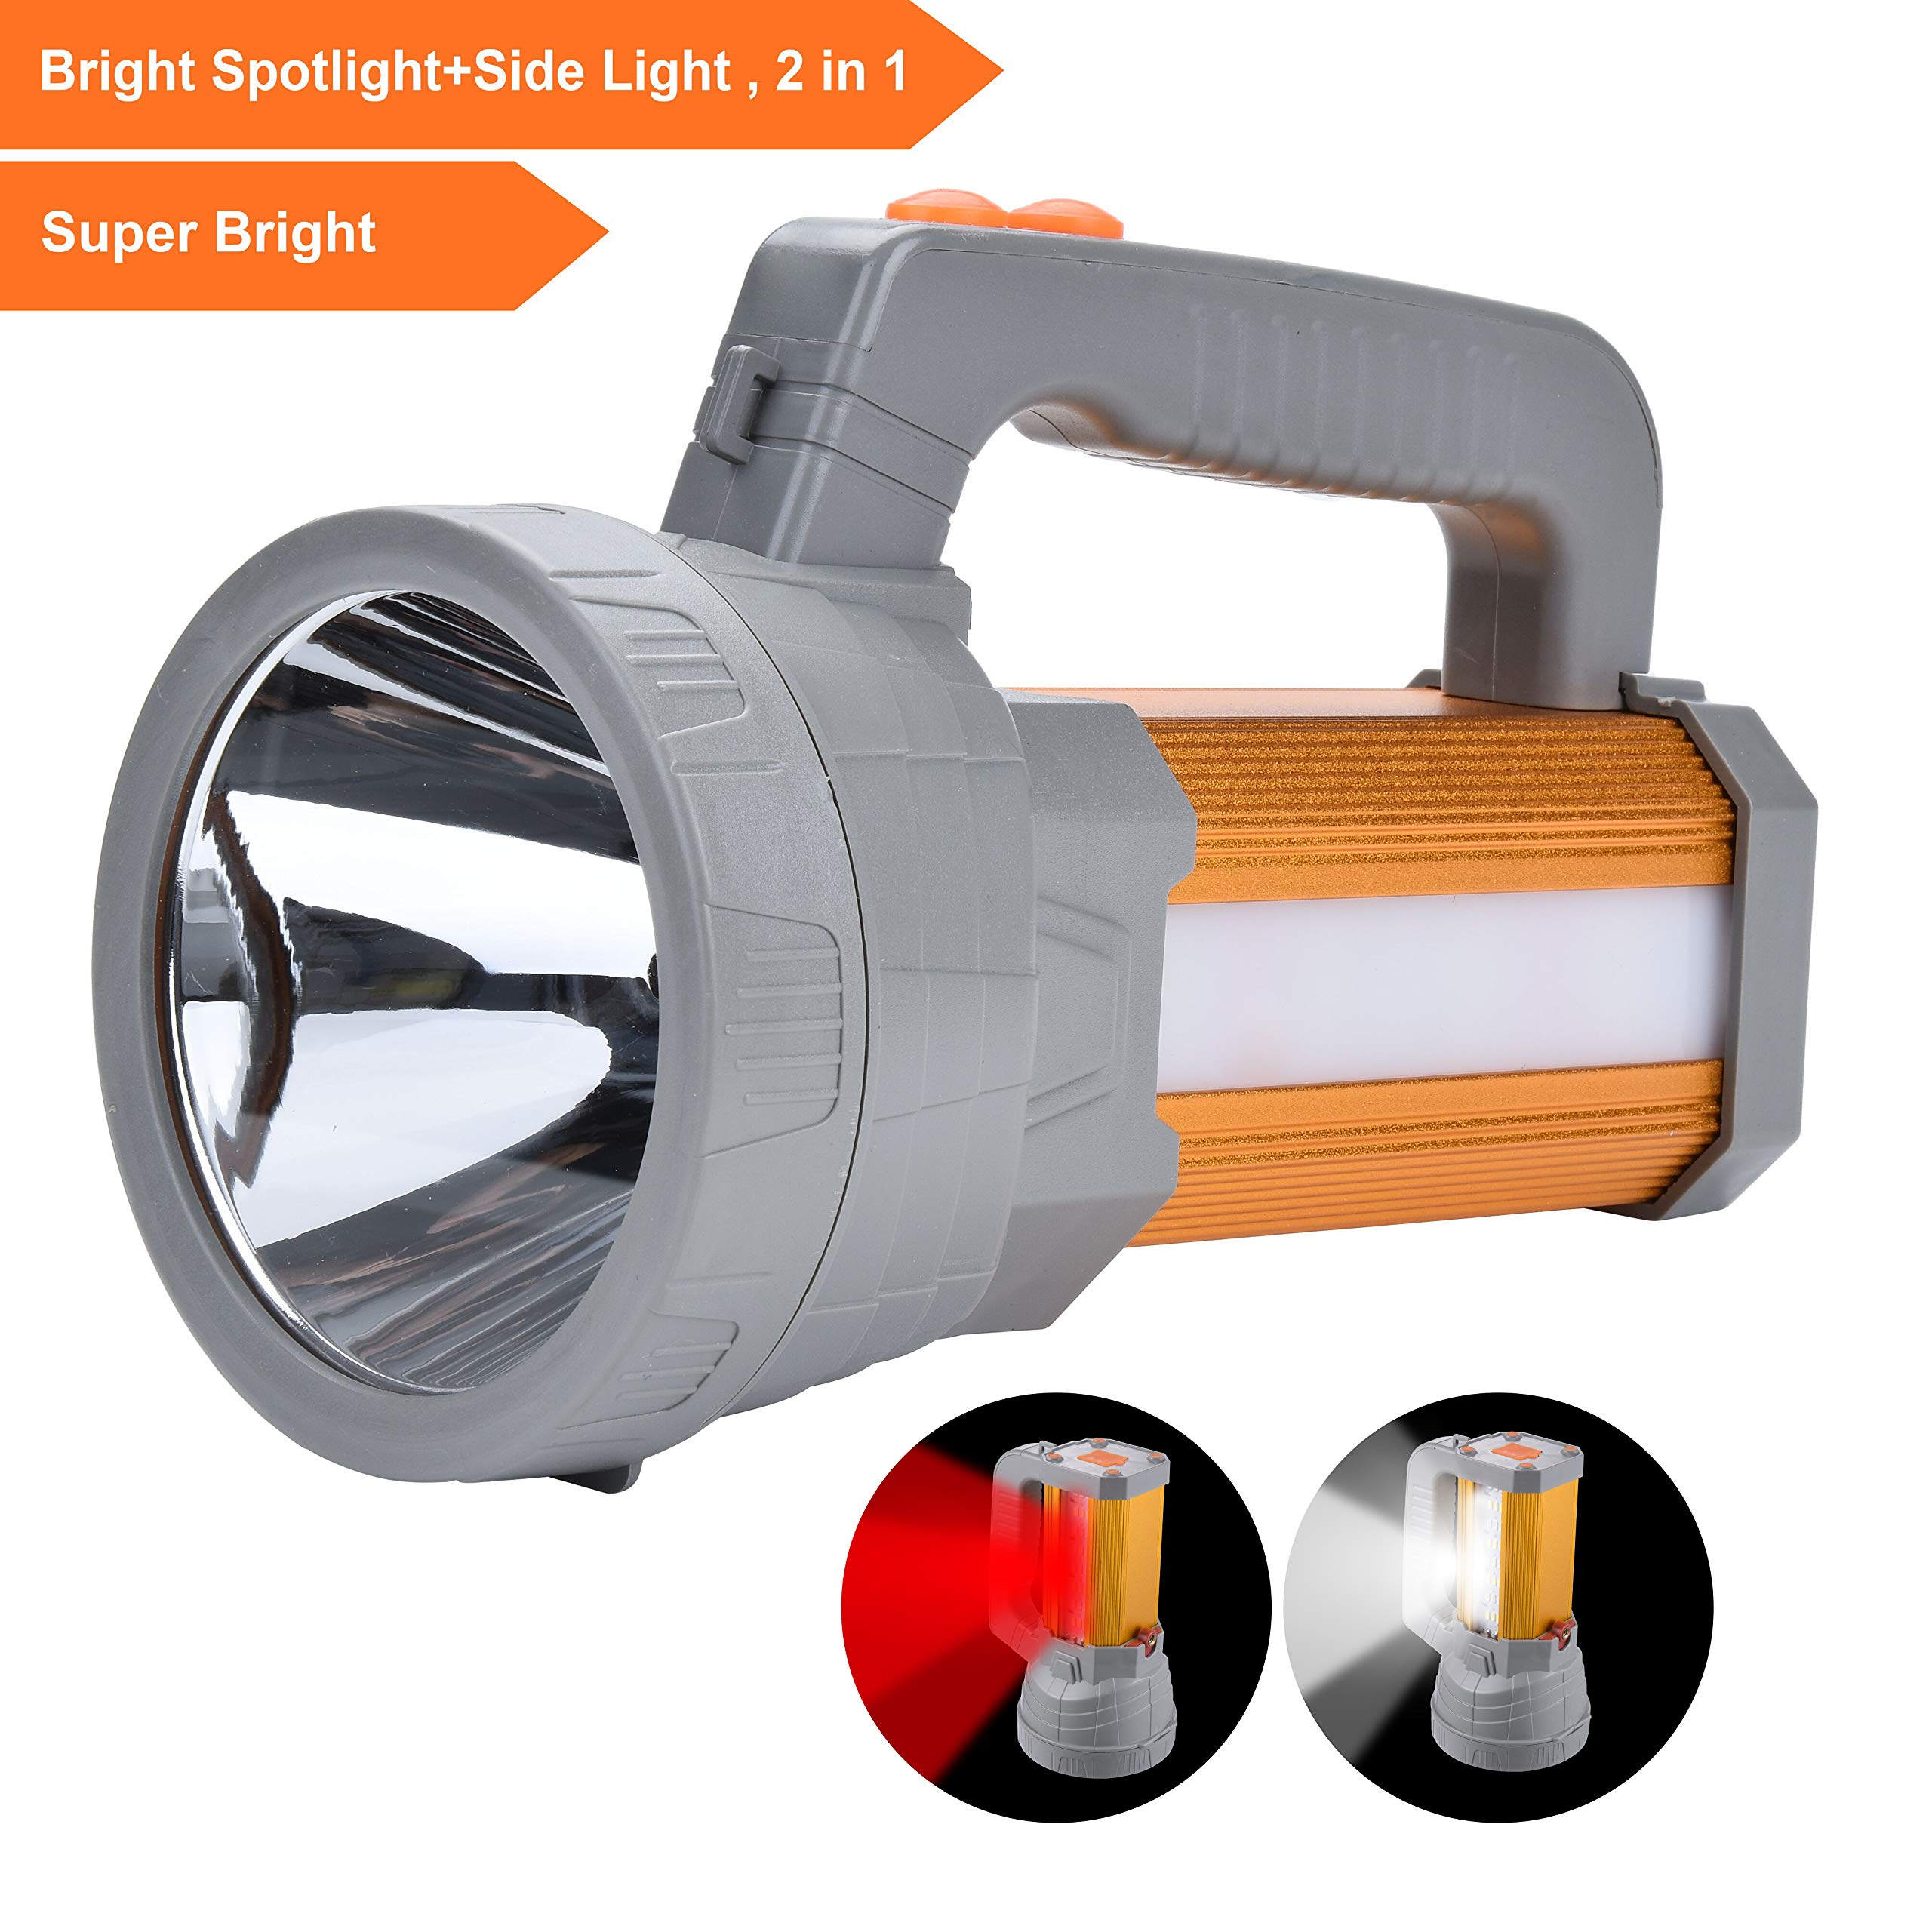 High Powered Super Bright LED Spotlight Flashlight Rechargeable High 6000 Lumens Handheld CREE Searchlight Large Battery 10000mAh Long Time, Bright Side Camping Lantern Work Light SOS Warning Mode